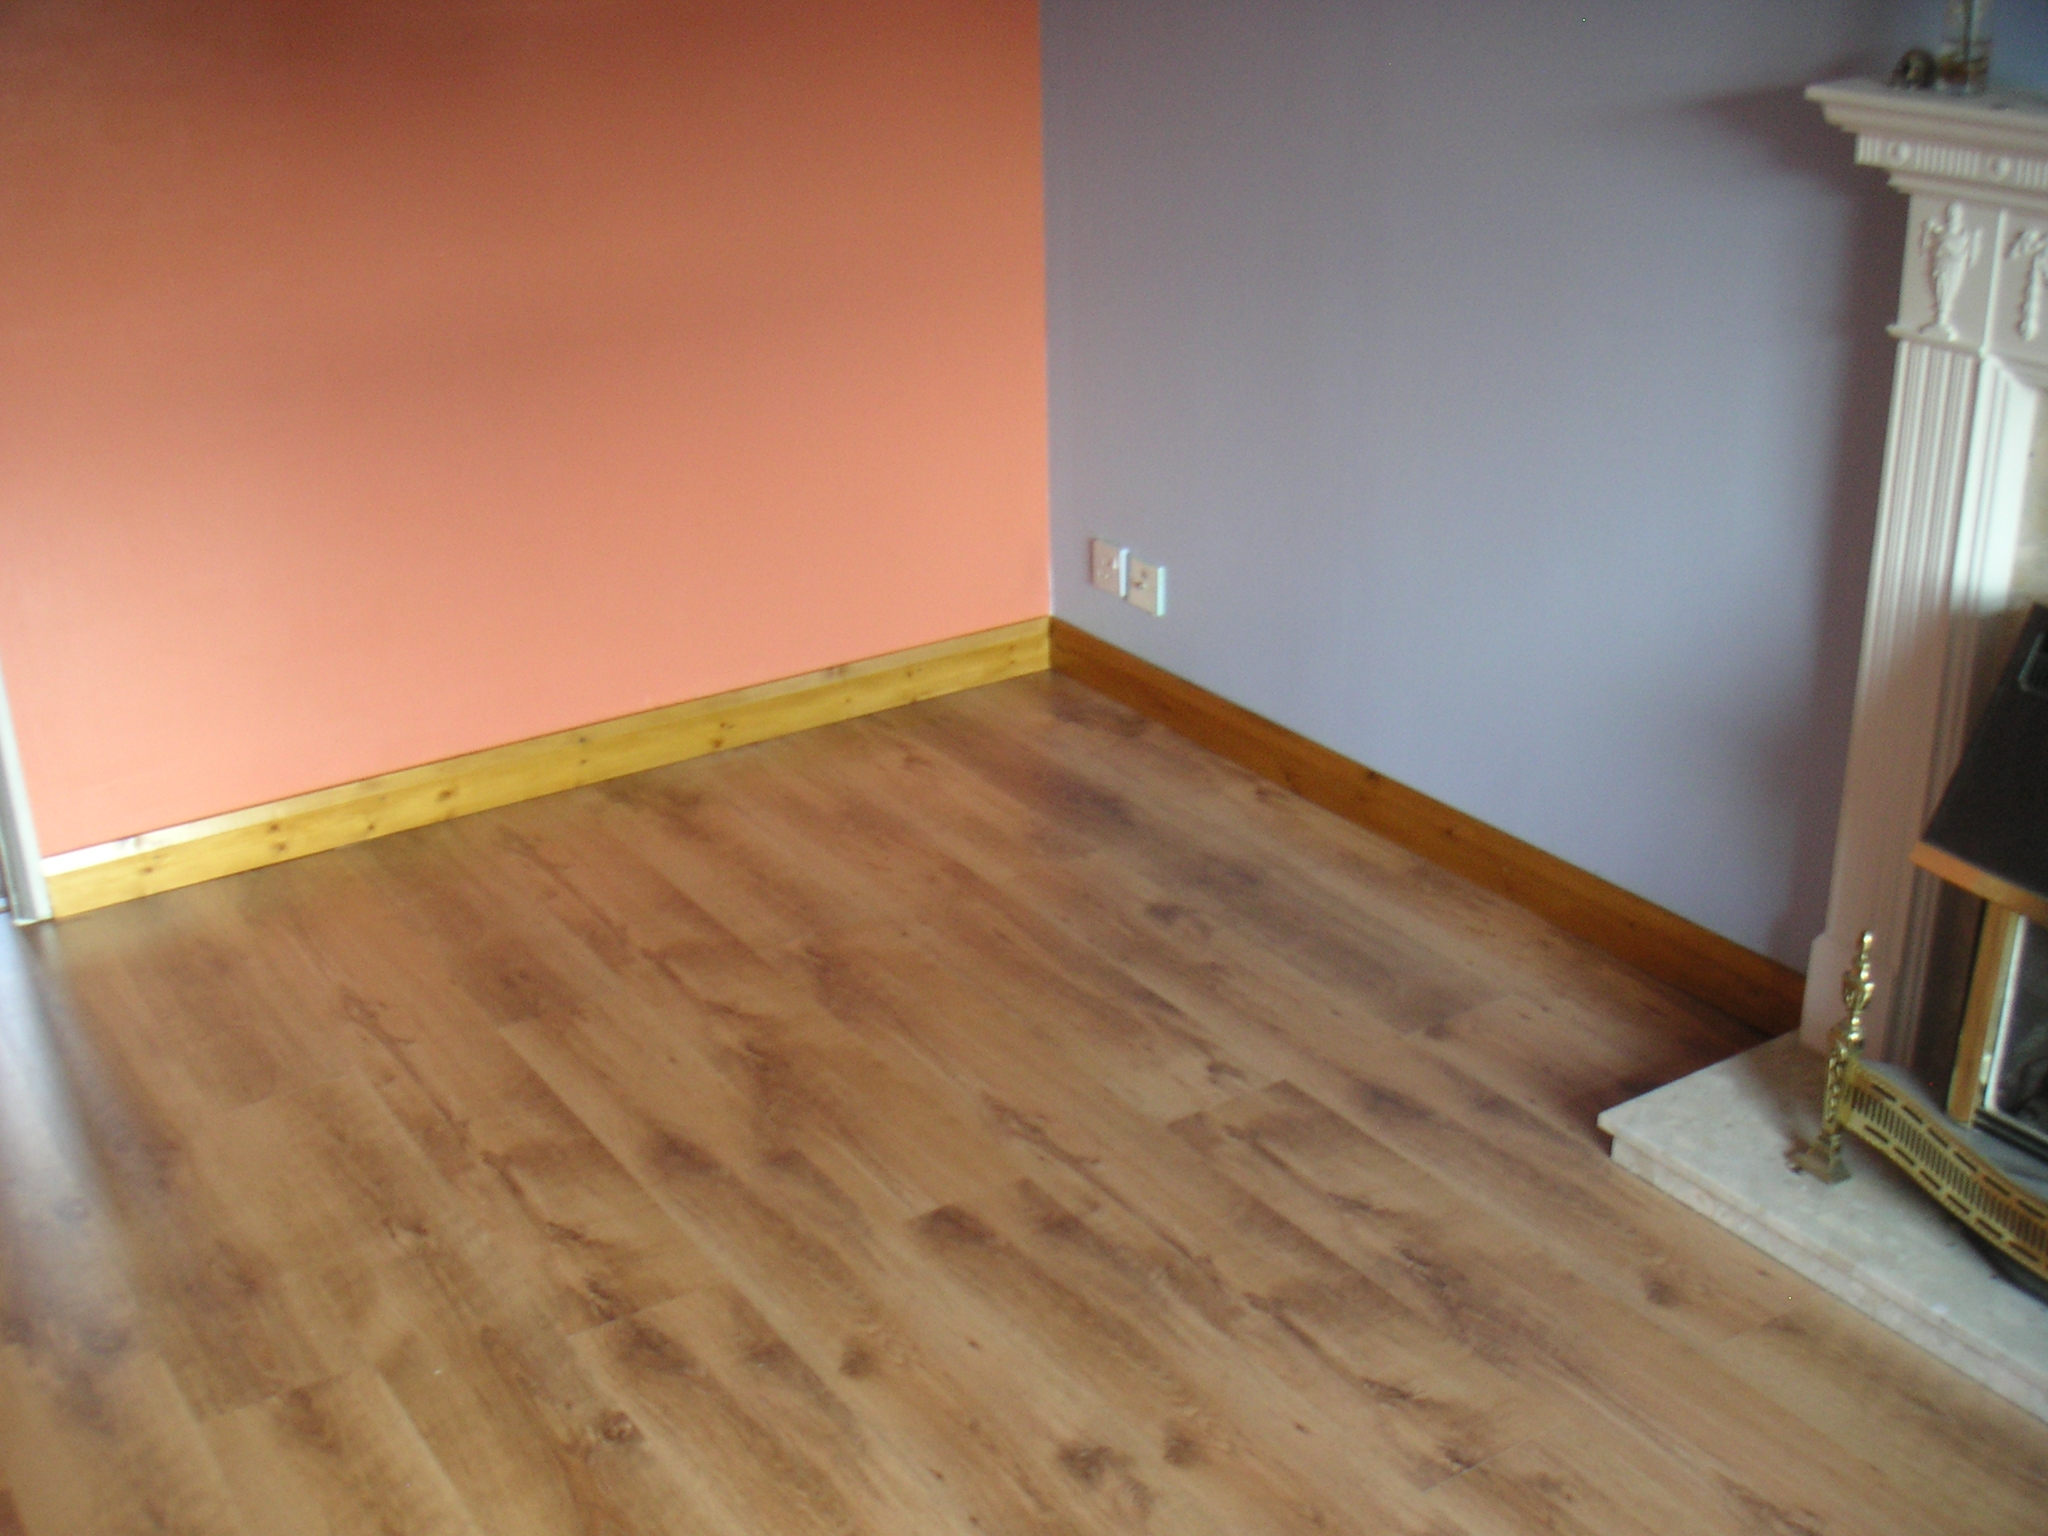 What Is Laminate Wood what is laminate flooring? | carolina flooring services